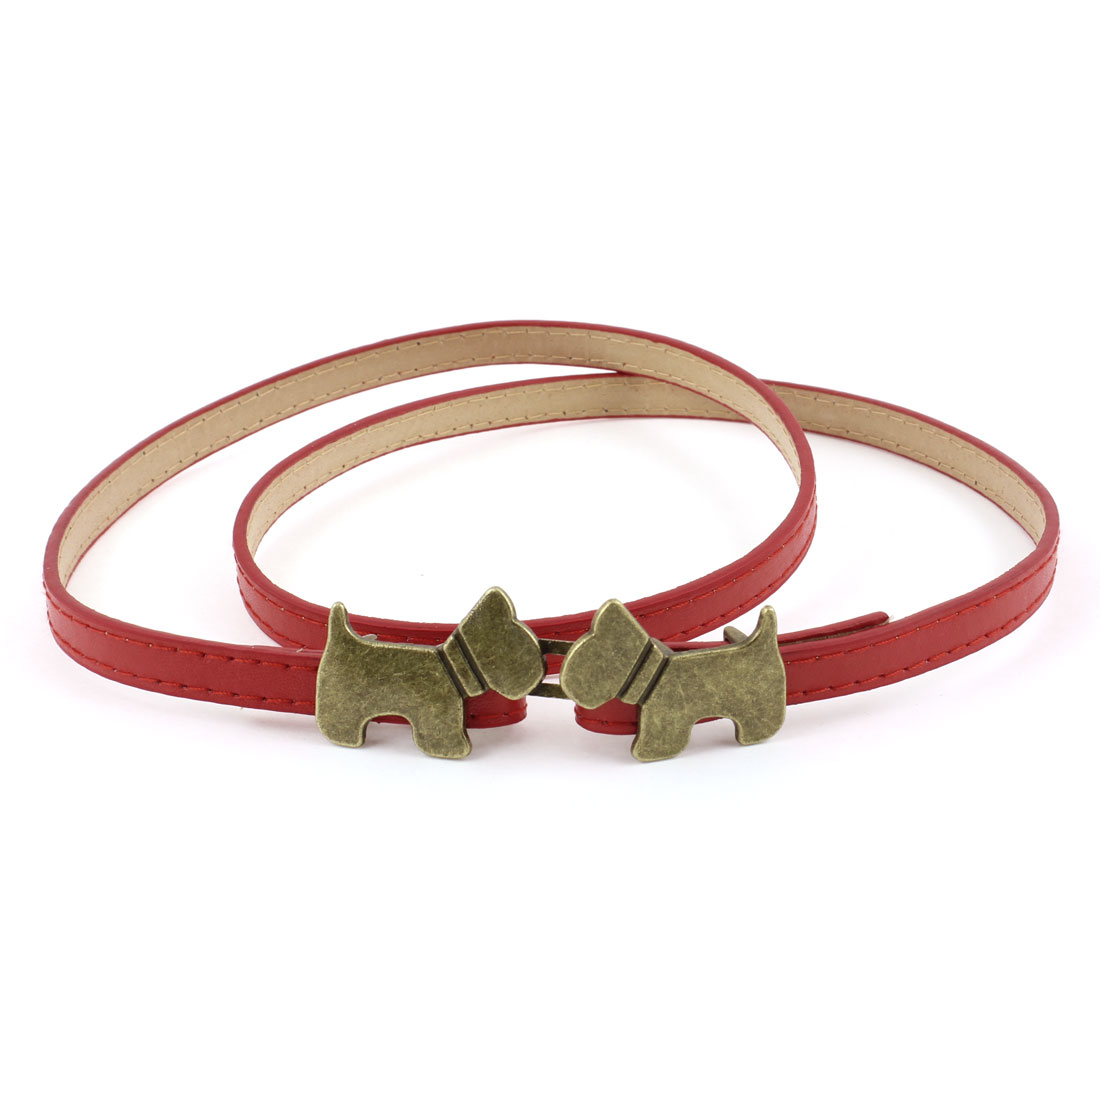 Lady Dog Decor Interlock Buckle 10mm Wide Red Faux Leather Waistband Belt